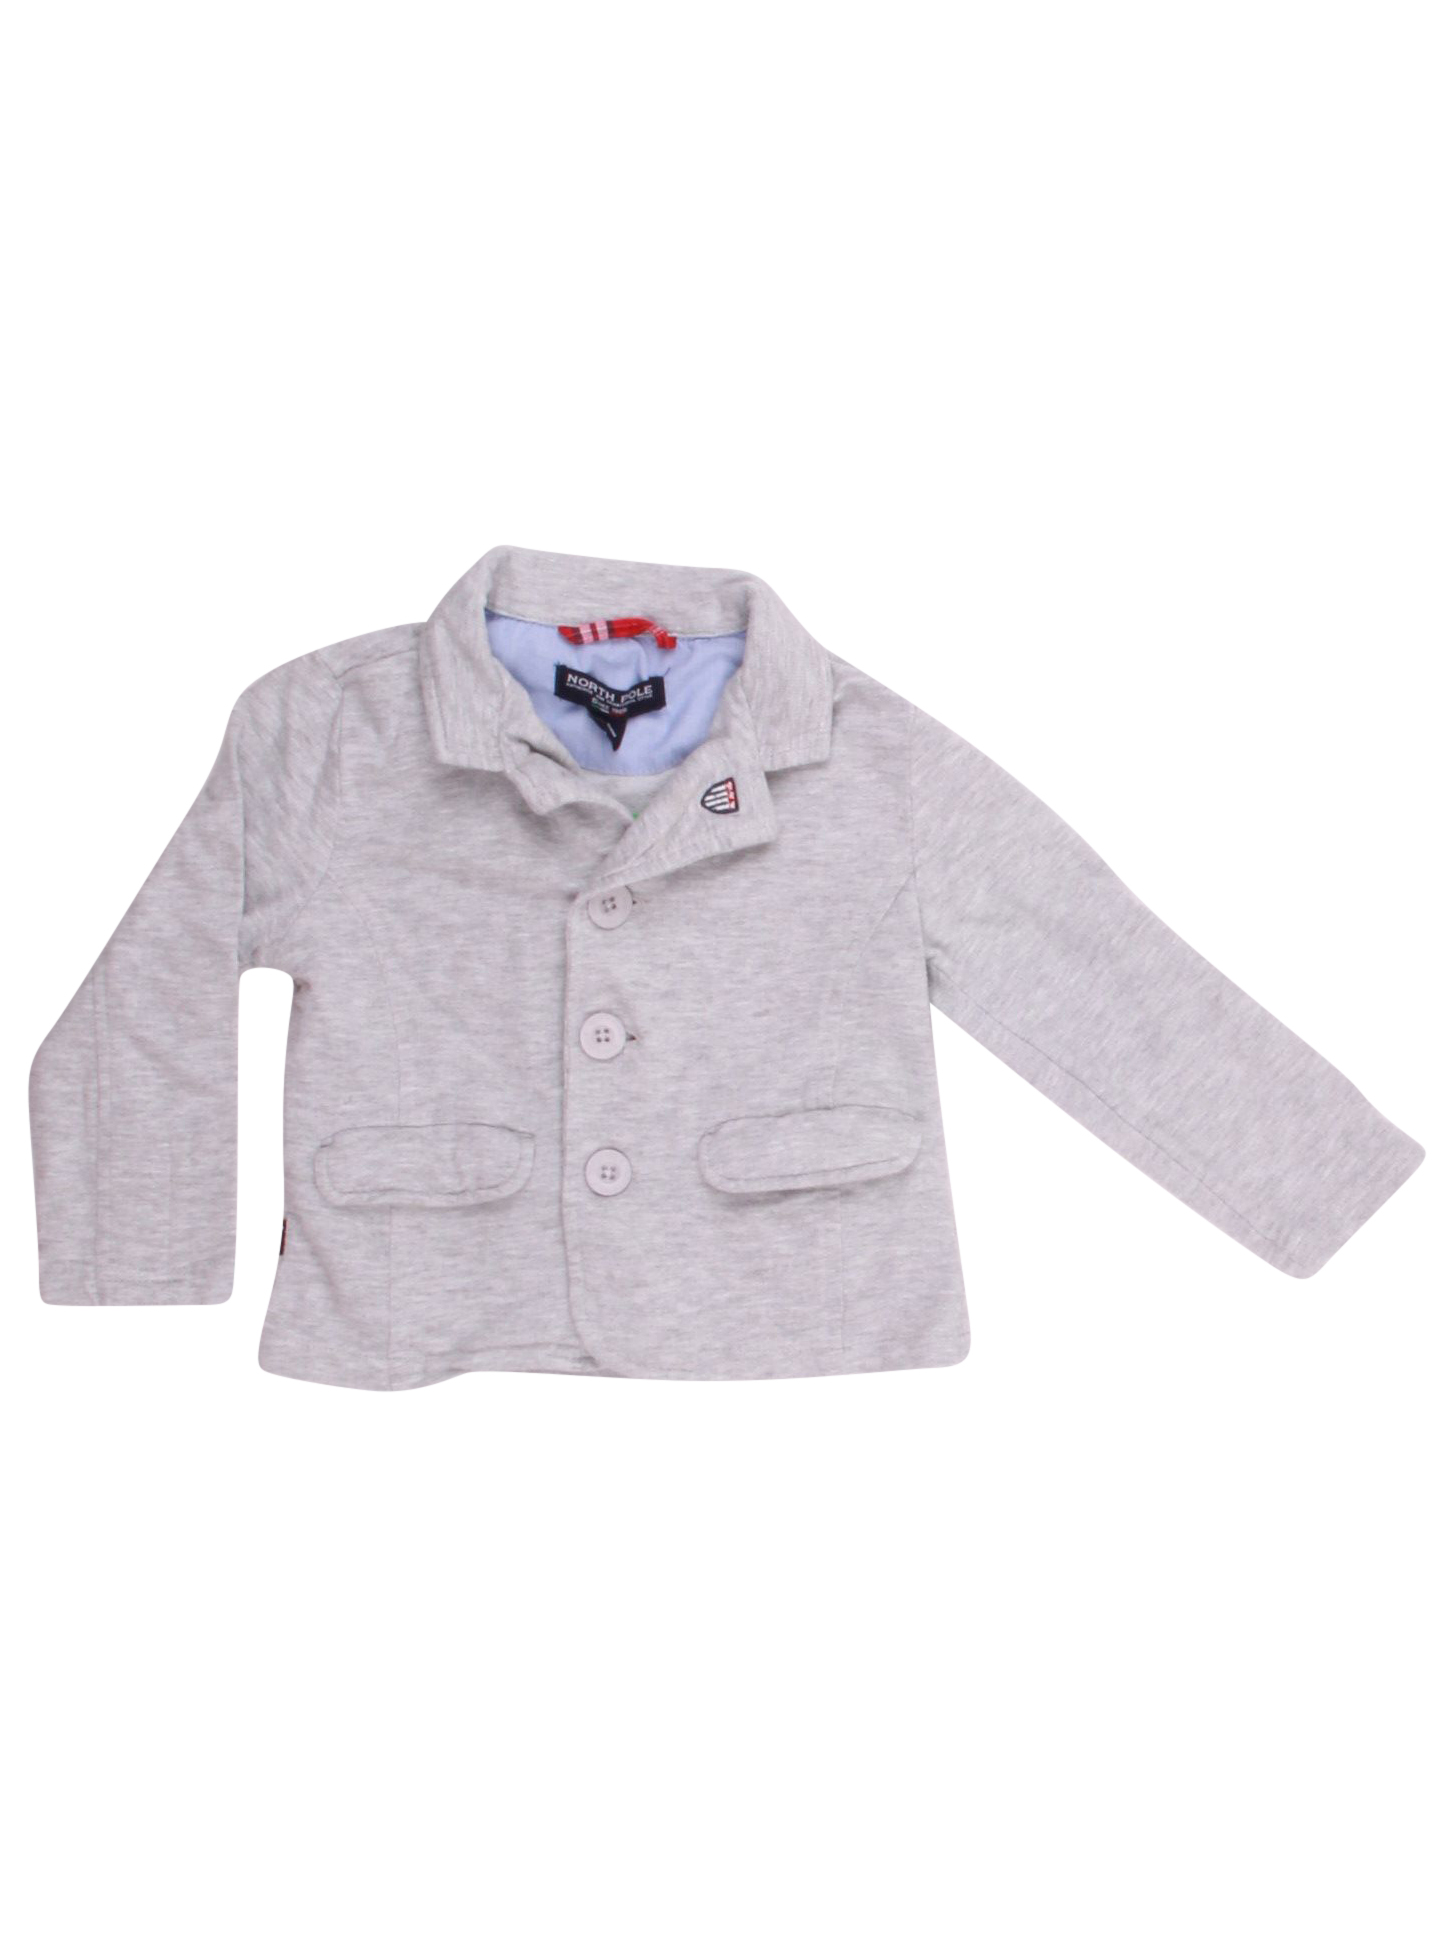 2 Anni Bambino 219442 Grigio Verde Armadio North Pole Giacca Aqhxw5 3 qH8nOH 345184902af5